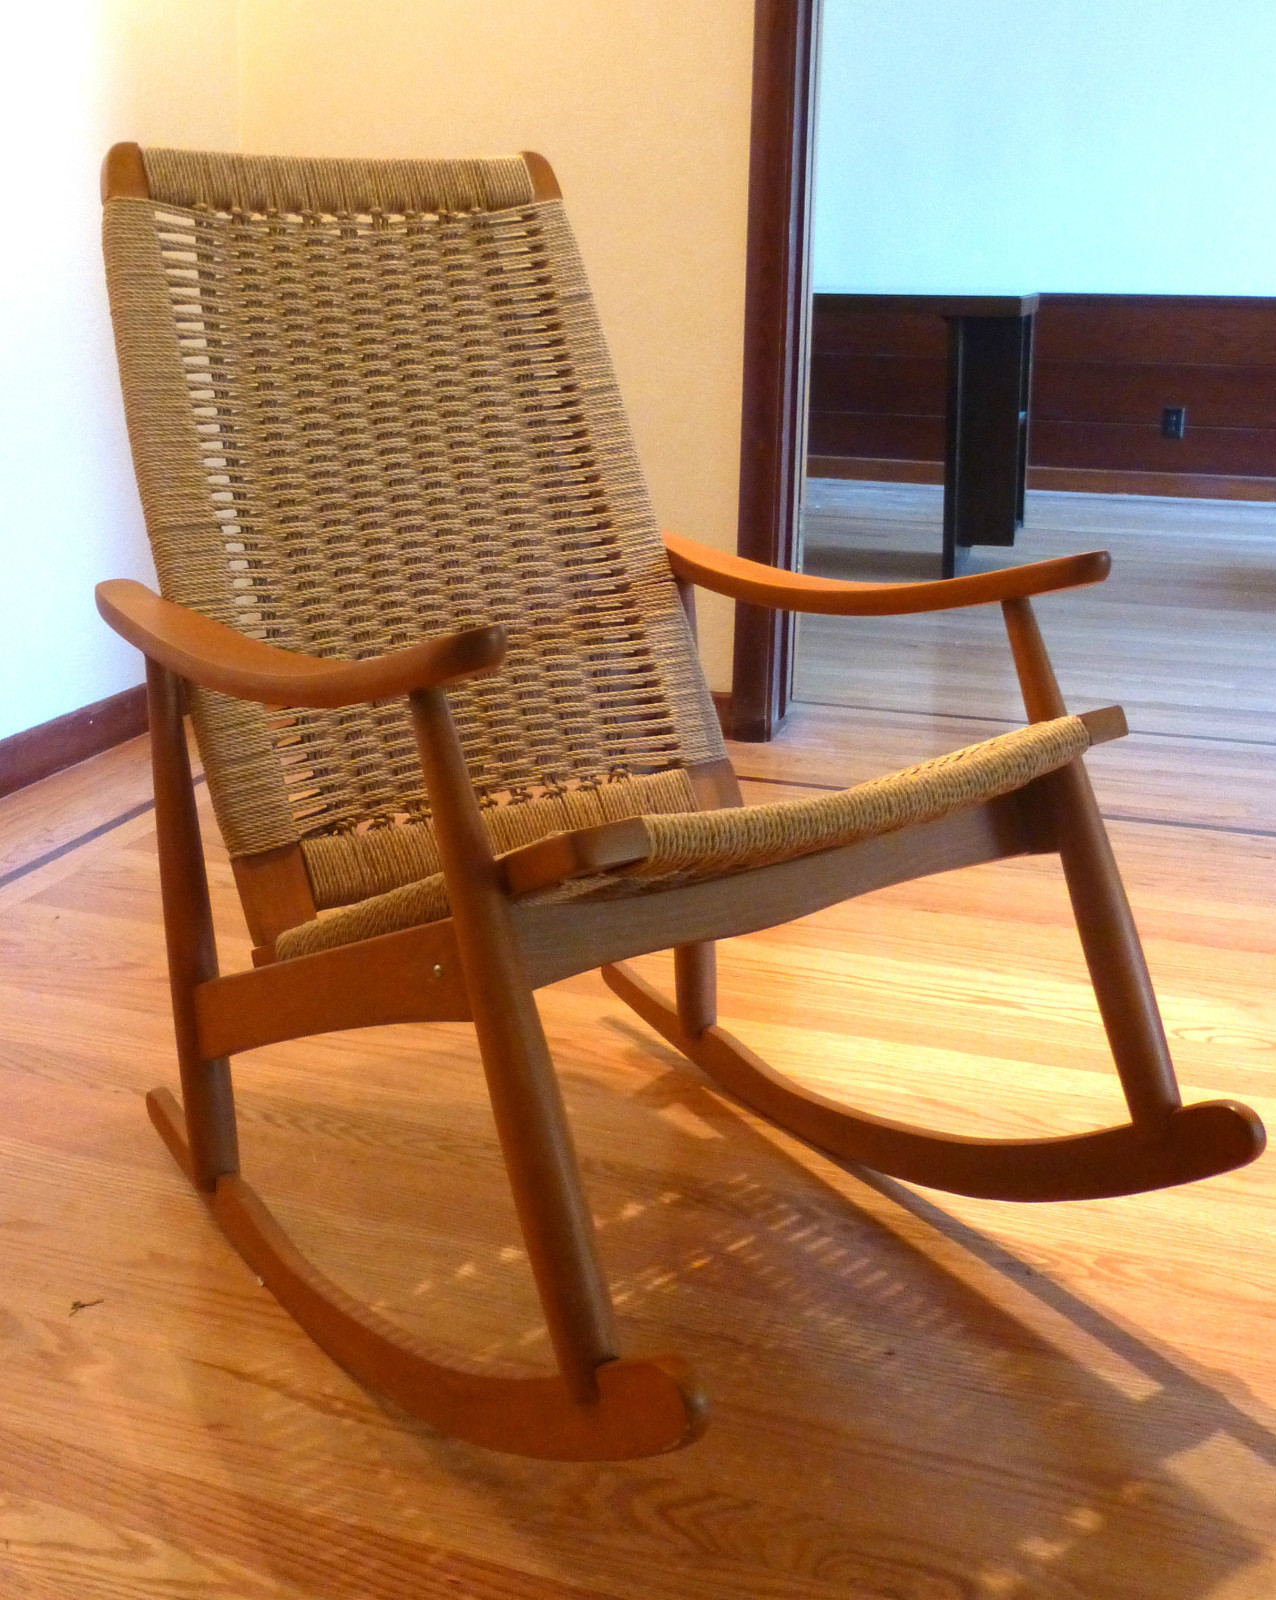 woven rocking chair antique style dining table and chairs mid century danish modern rope wegner